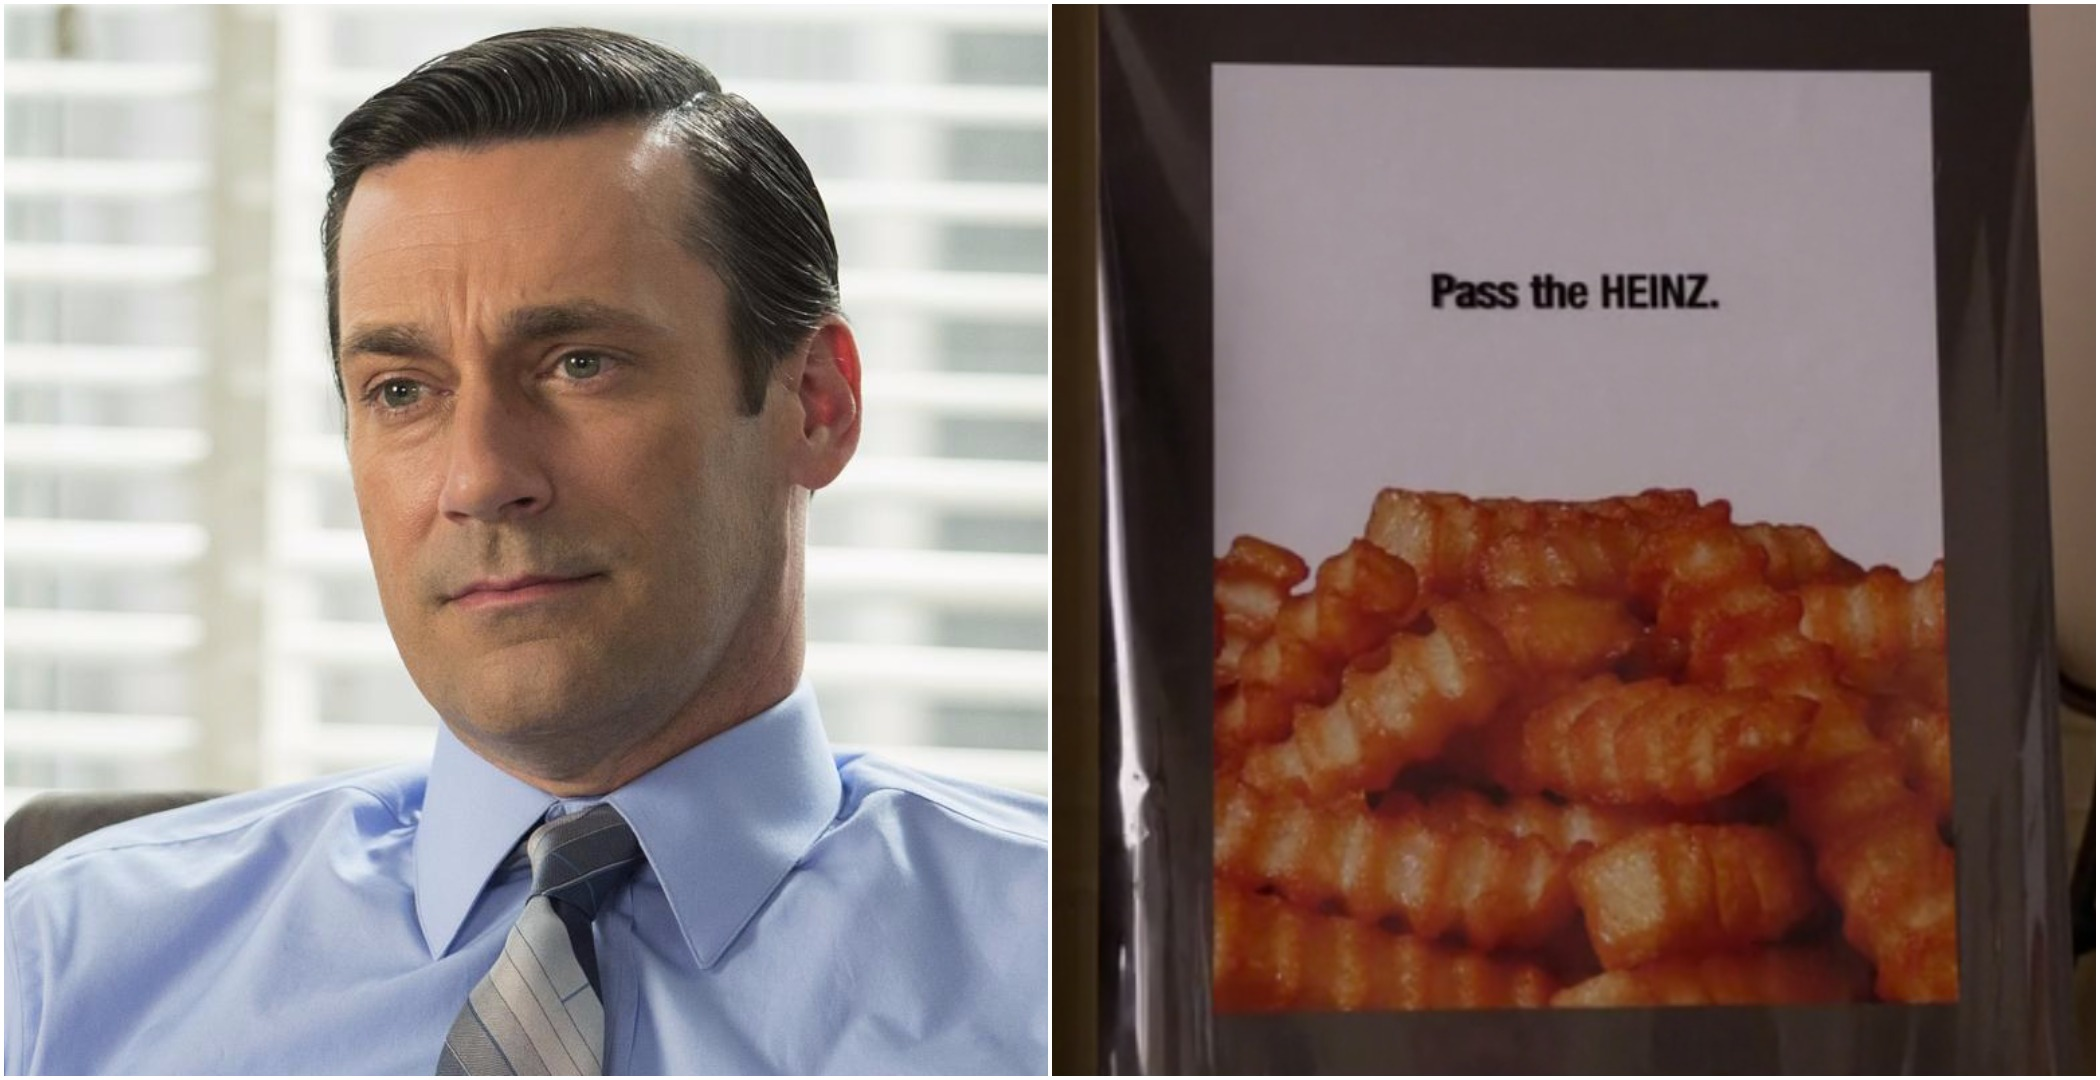 Heinz is using Don Draper's mouth-watering ad campaign 50 years after he pitched it on Mad Men